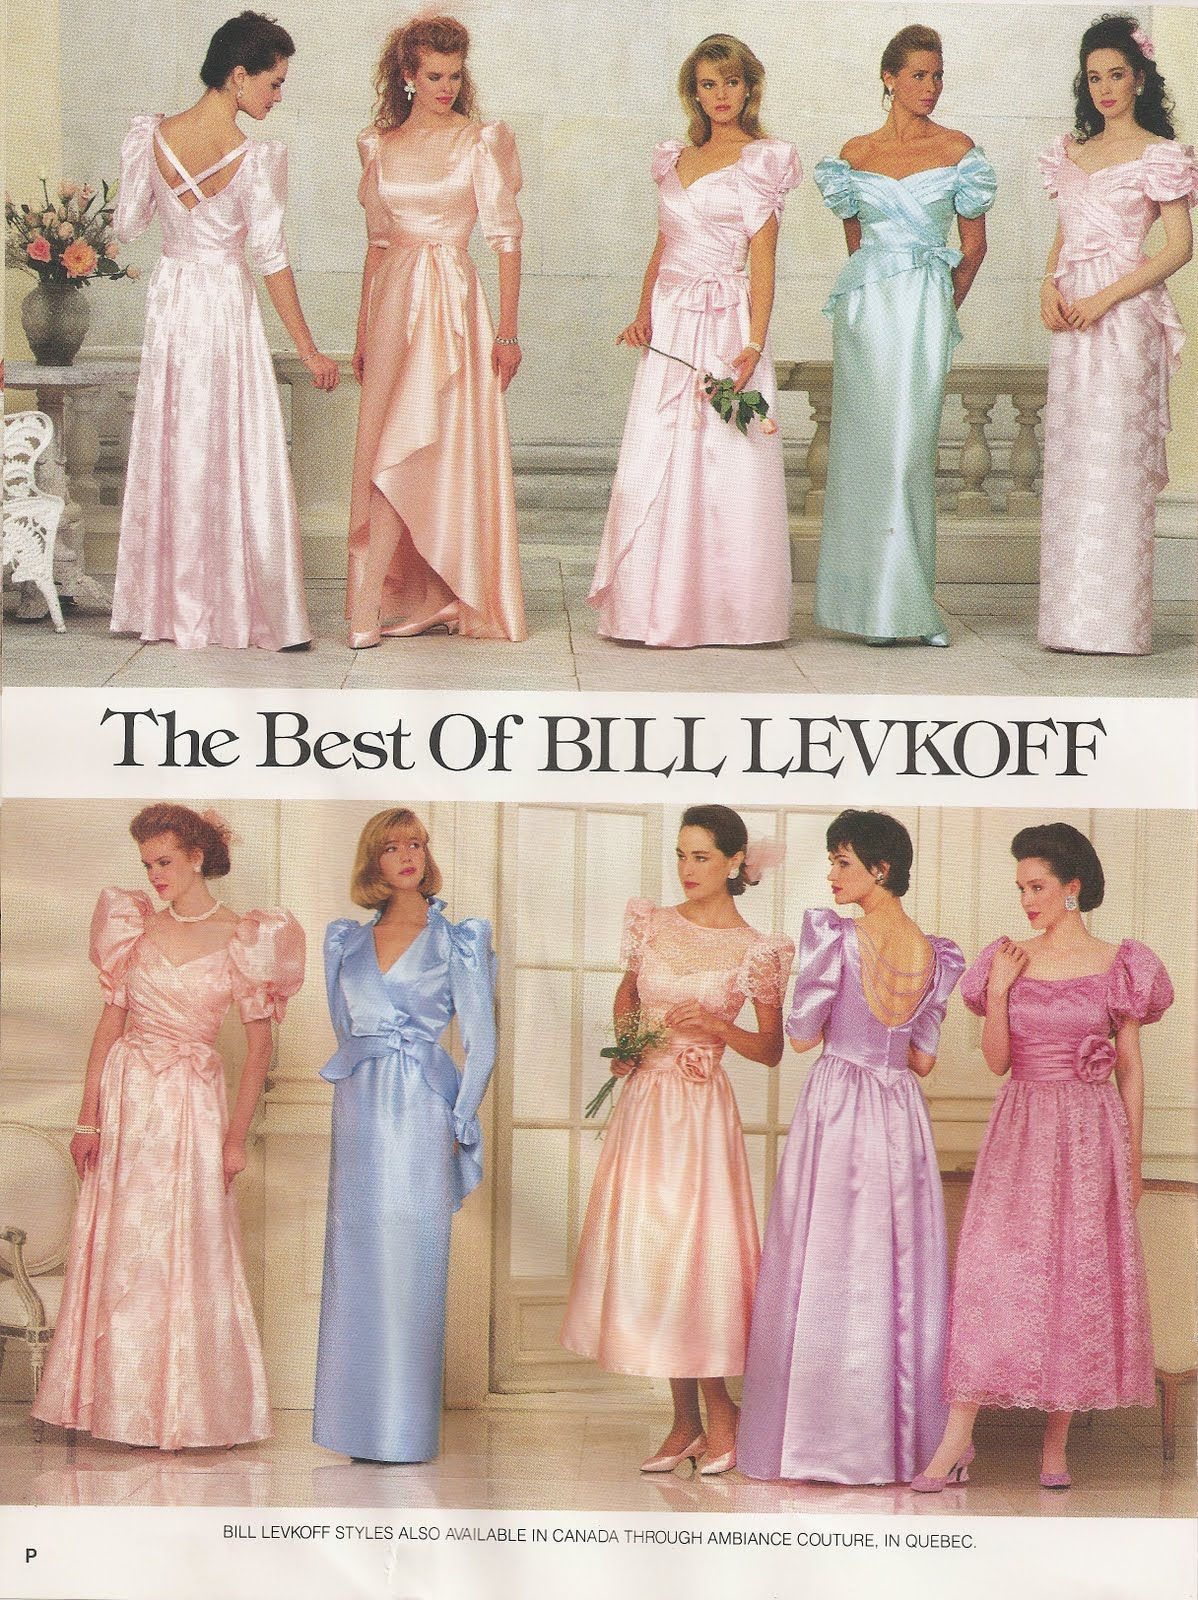 Bill levkoff dresses from the s the us pinterest s